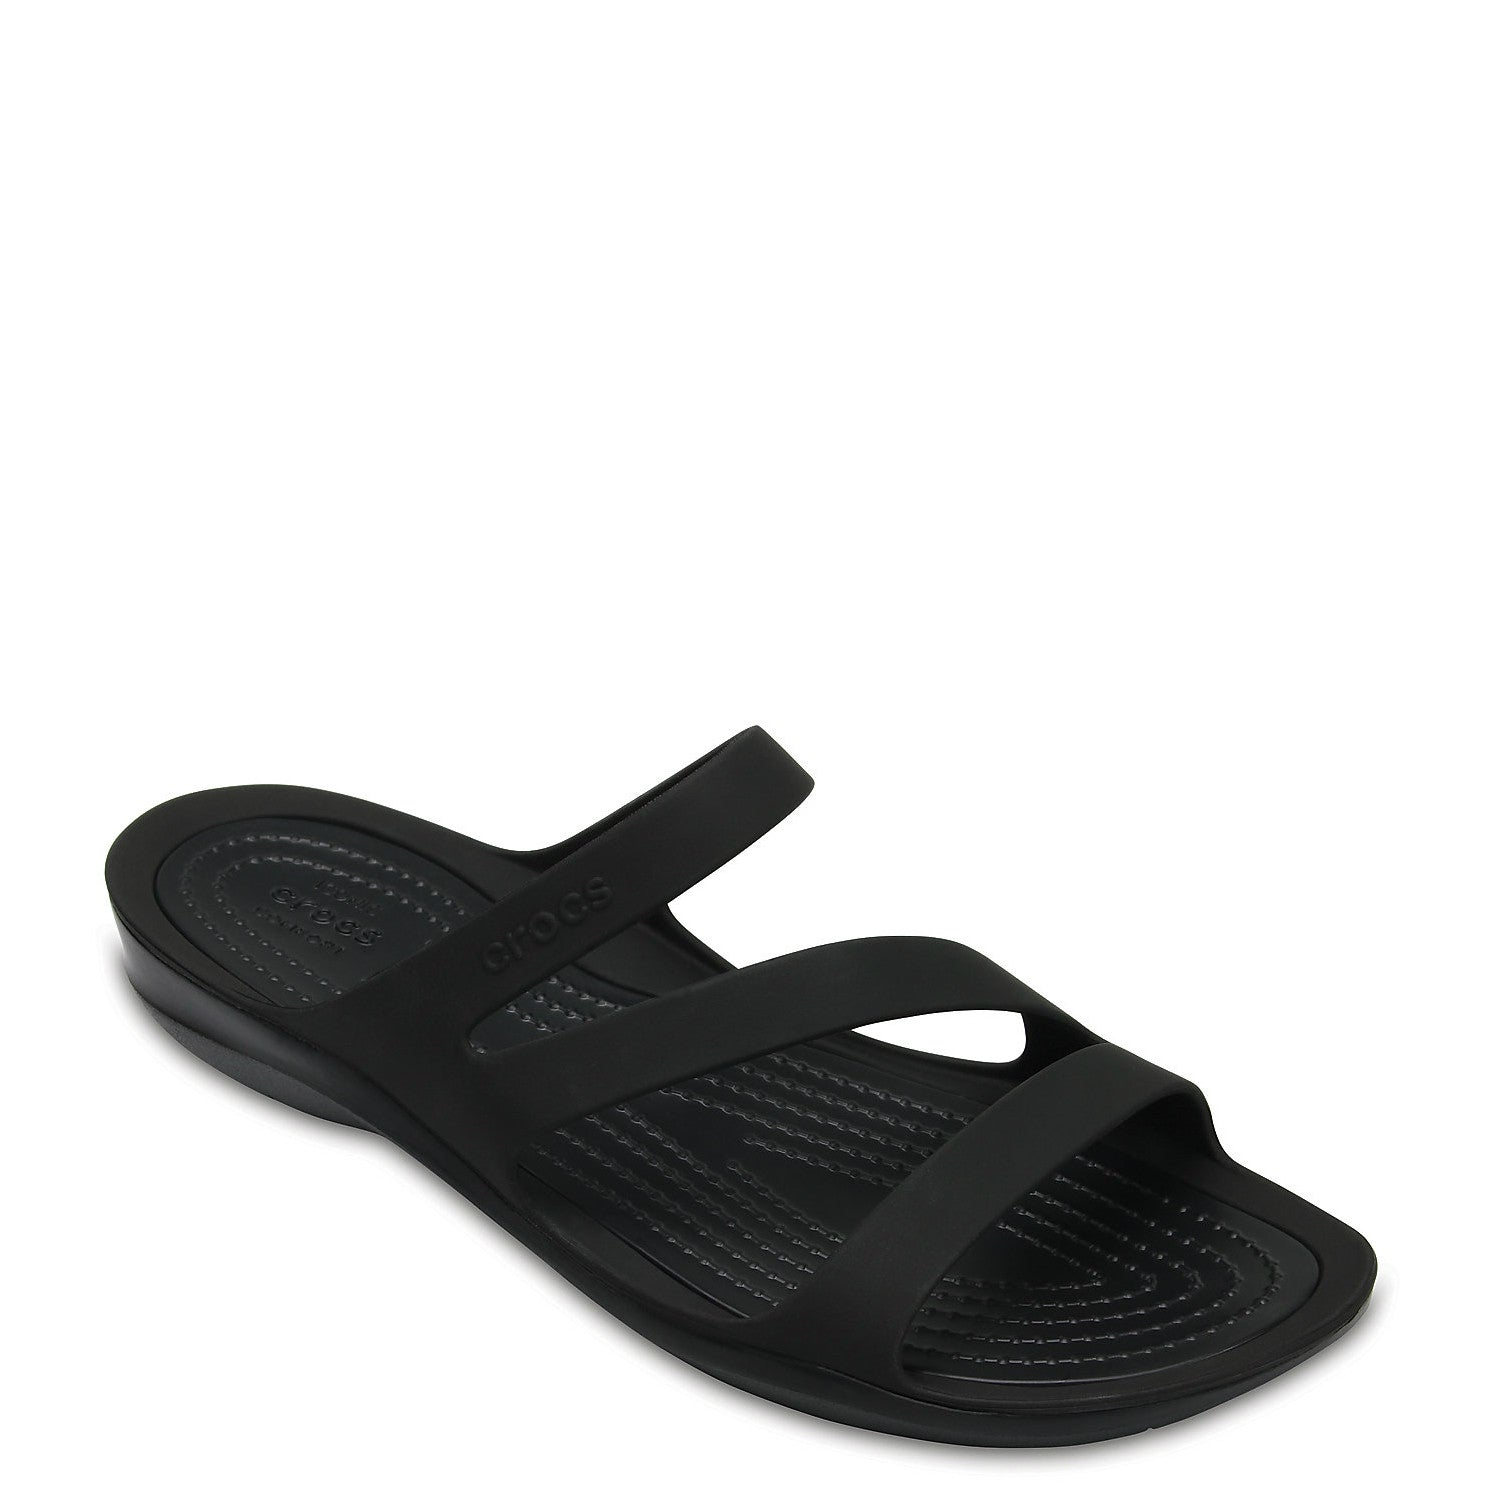 e16b2f04a2e58e Crocs Women s Swiftwater Sandal - Black 203998 - ShoeShackOnline